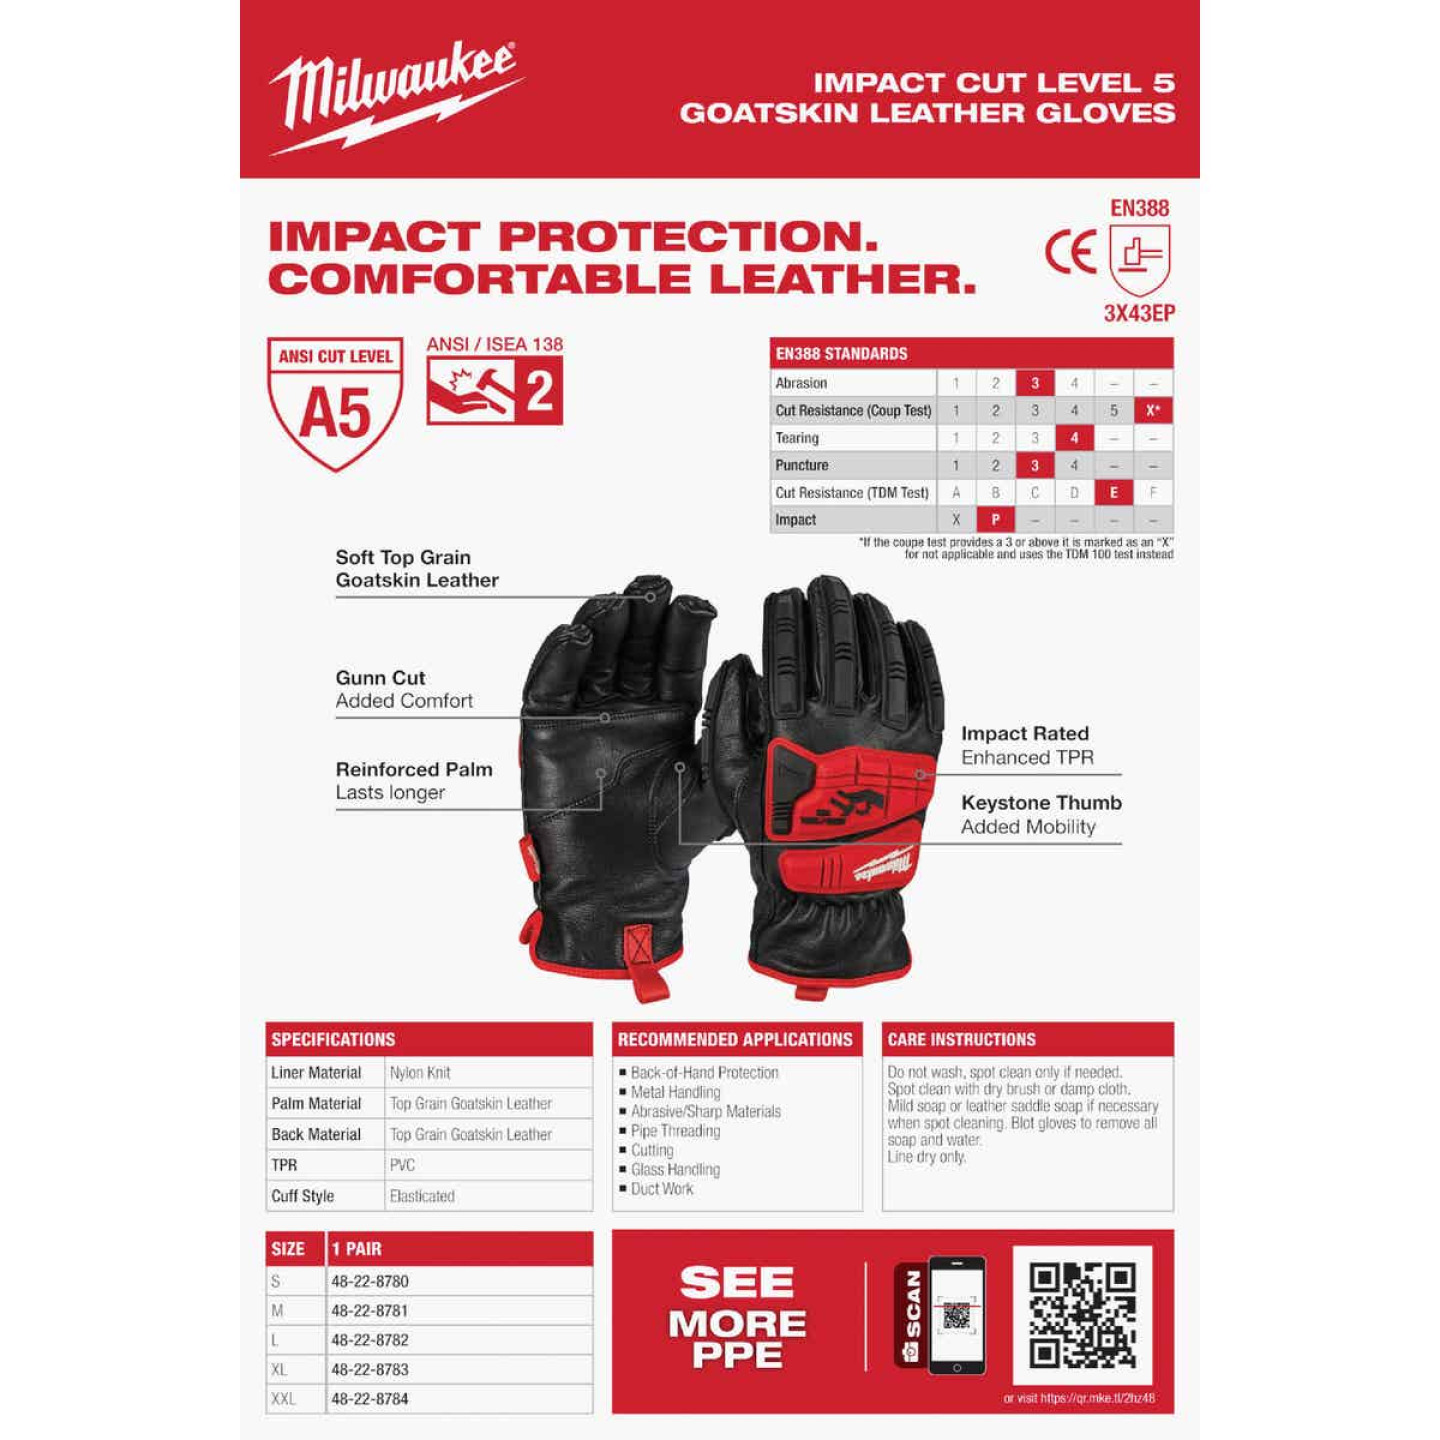 Milwaukee Impact Cut Level 5 Men's XL Goatskin Leather Work Gloves Image 5